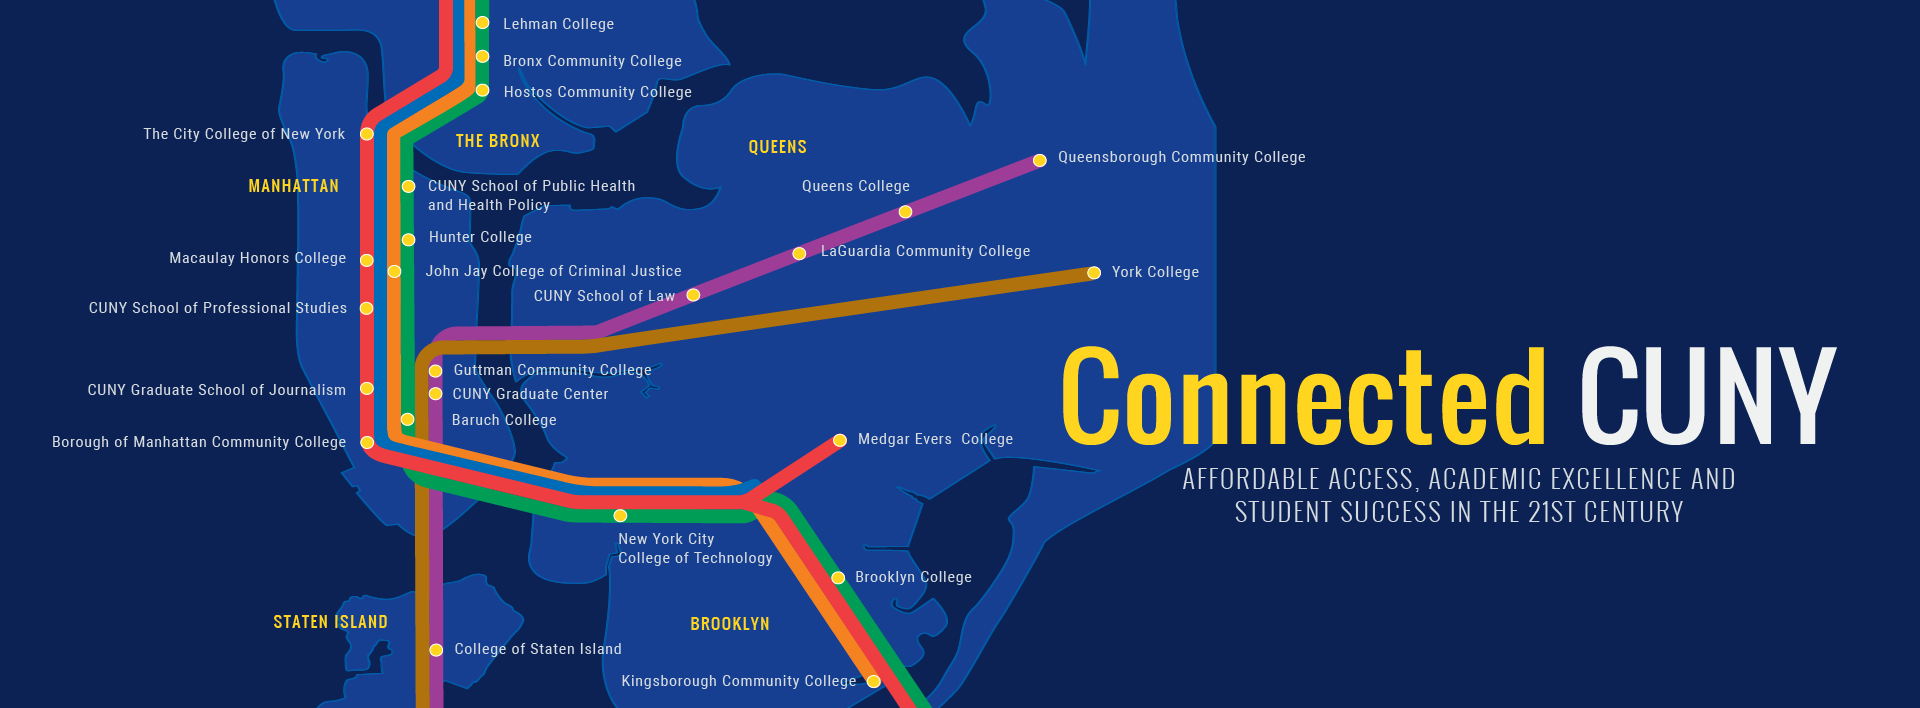 Connected CUNY in the 21st century campus map/locator graphic